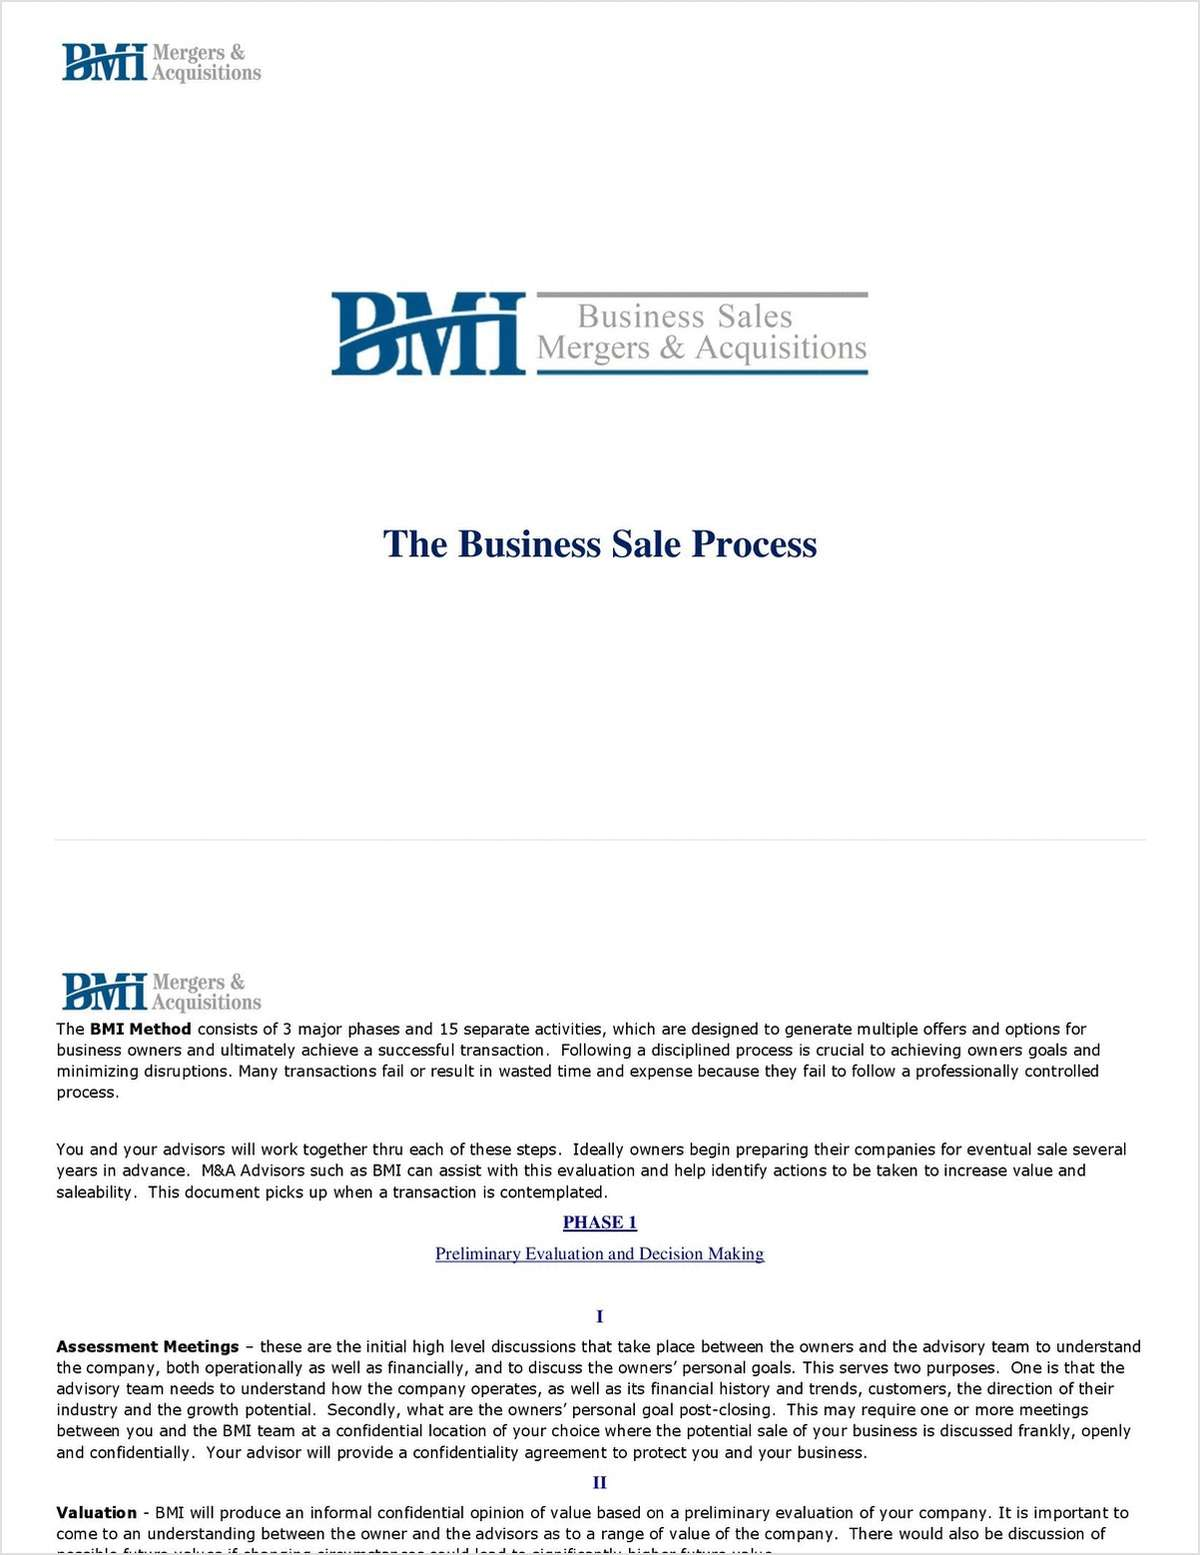 The Business Sale Process